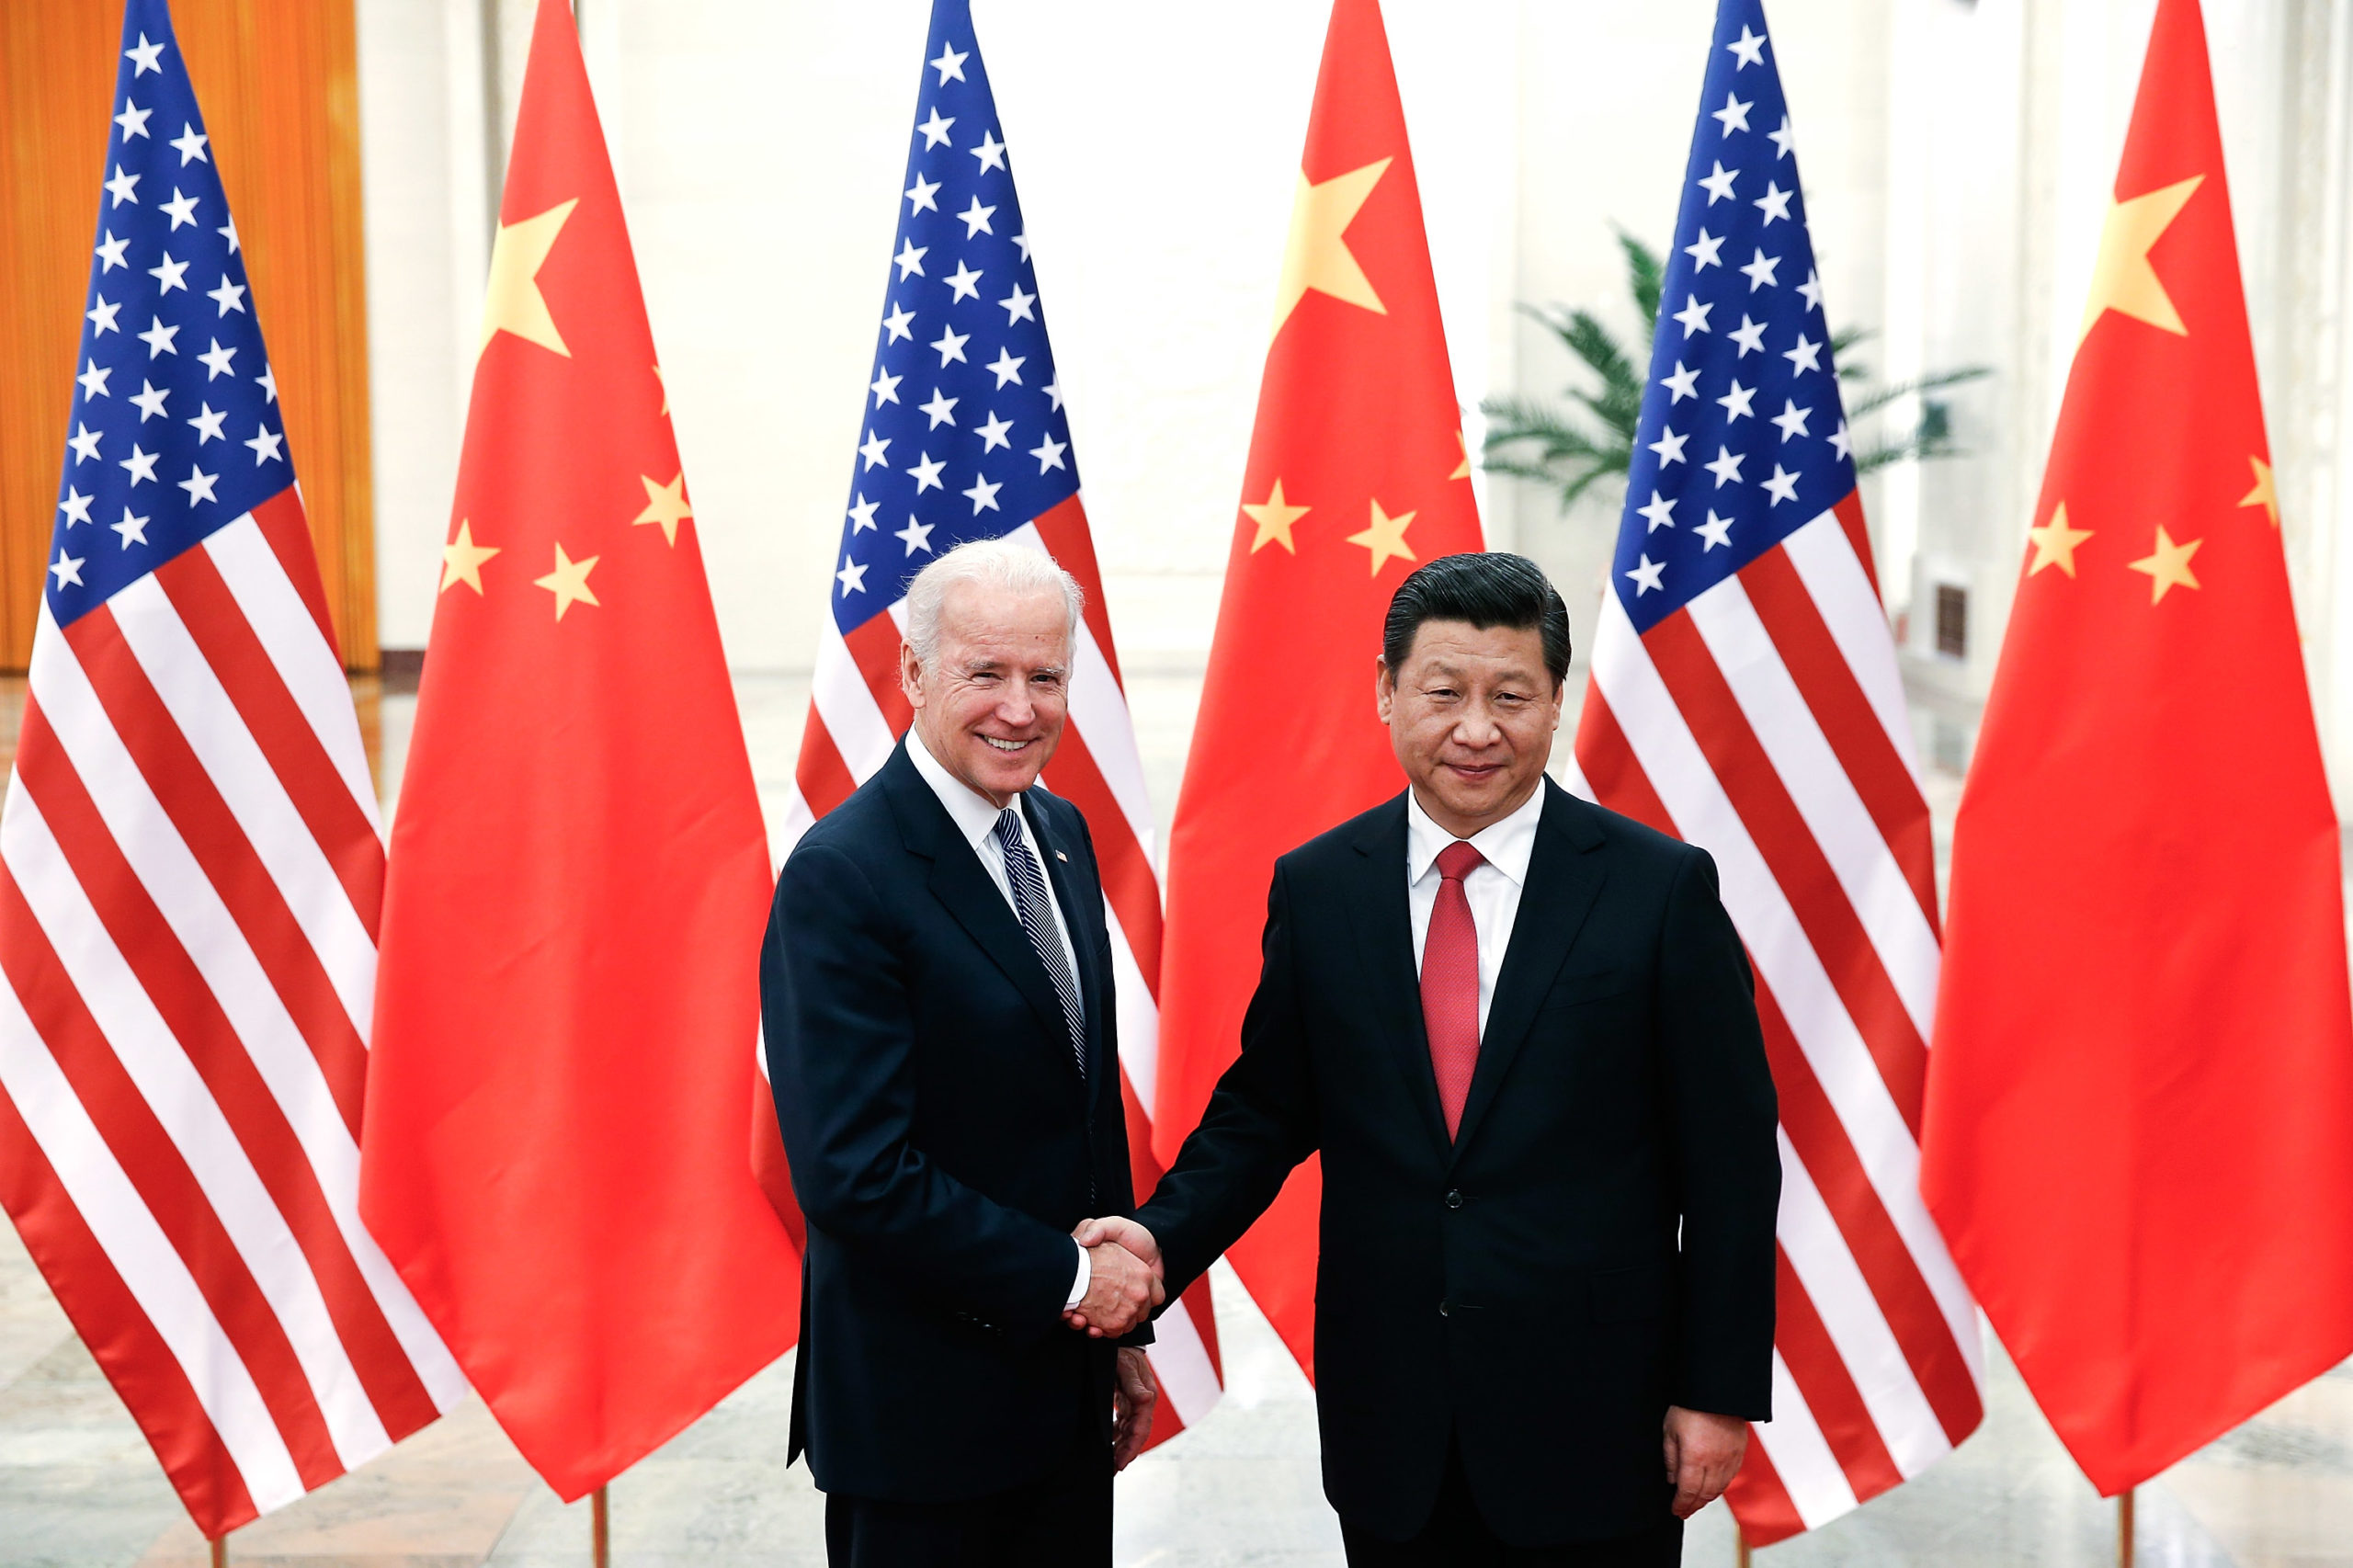 Chinese President Xi Jinping shake hands with President Joe Biden in 2013. (Lintao Zhang/Getty Images)